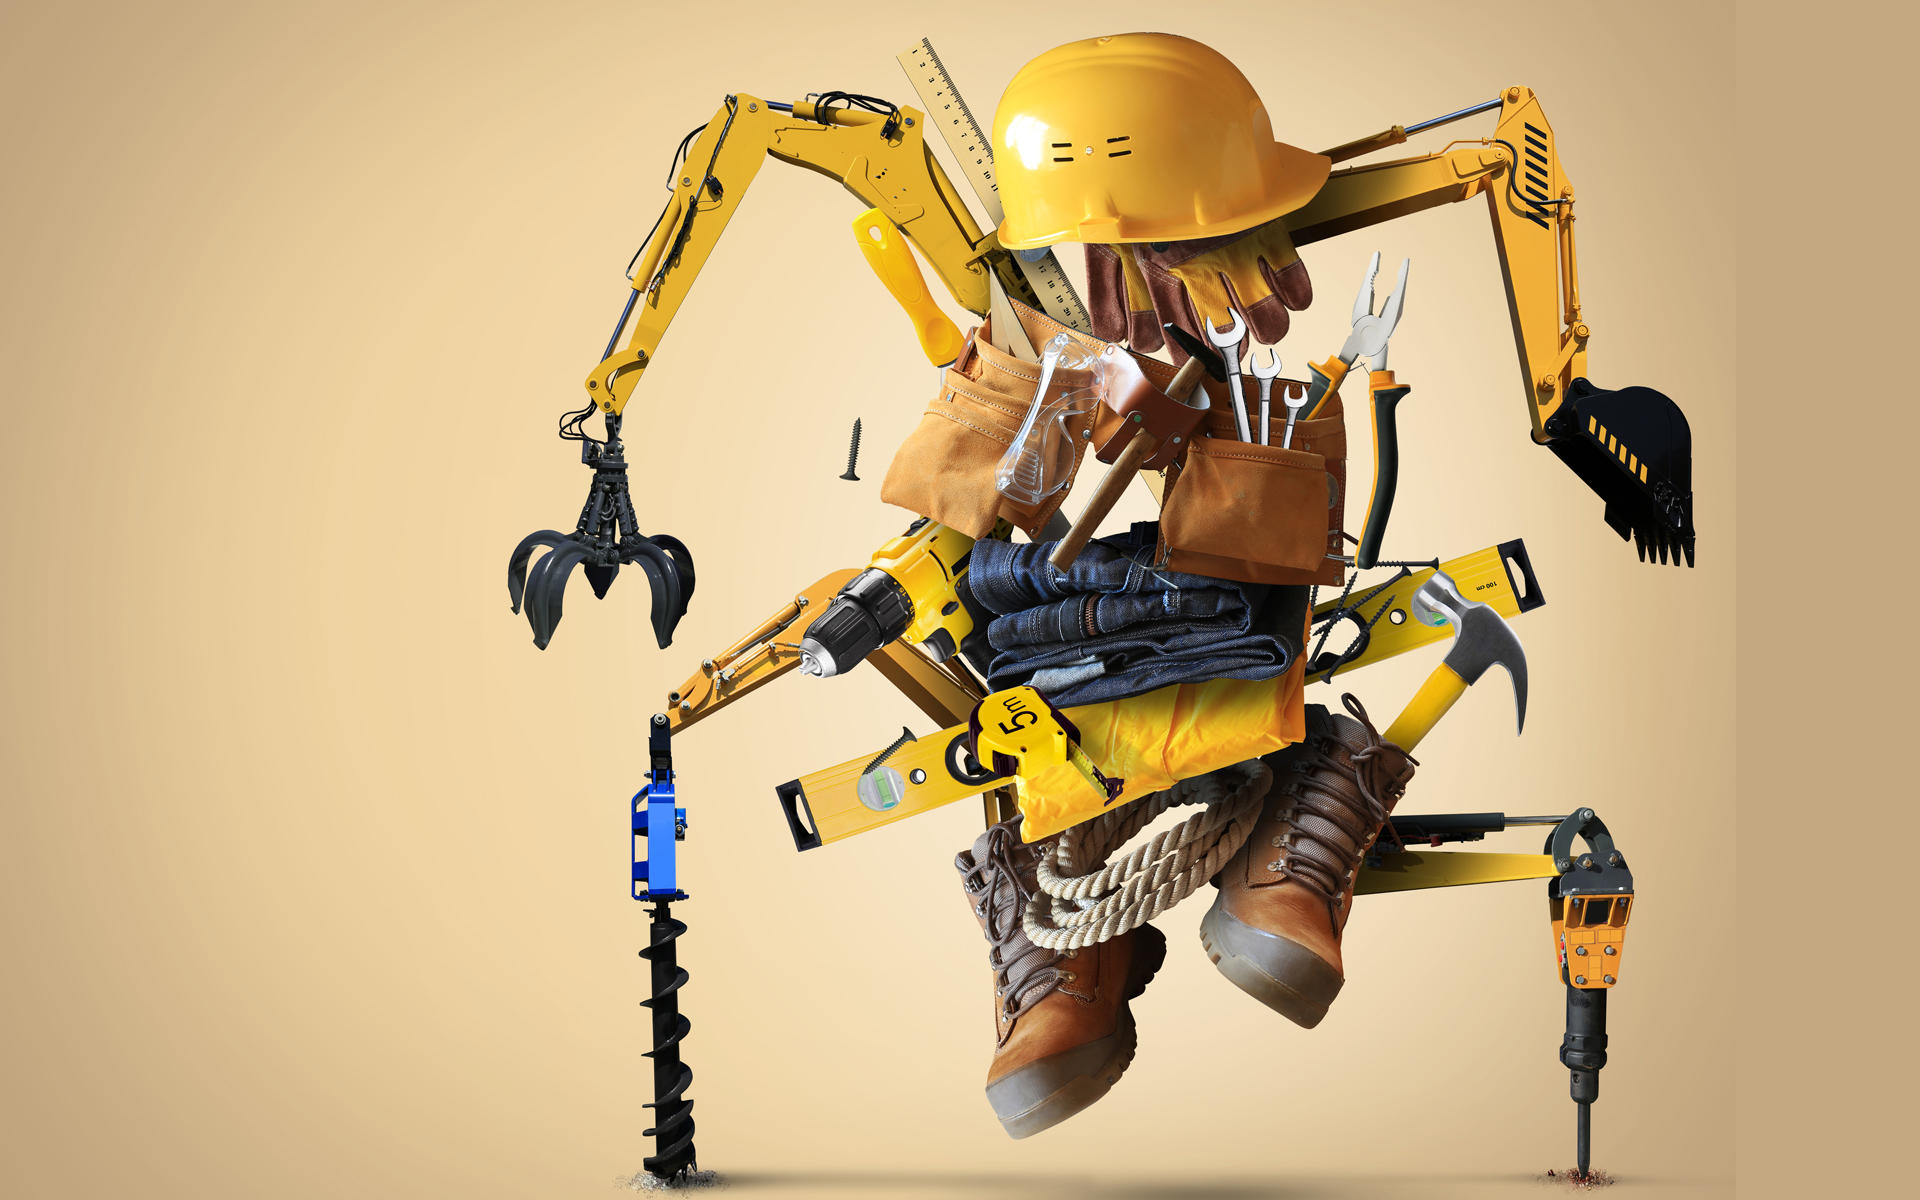 How to make weapons from the Lego constructor